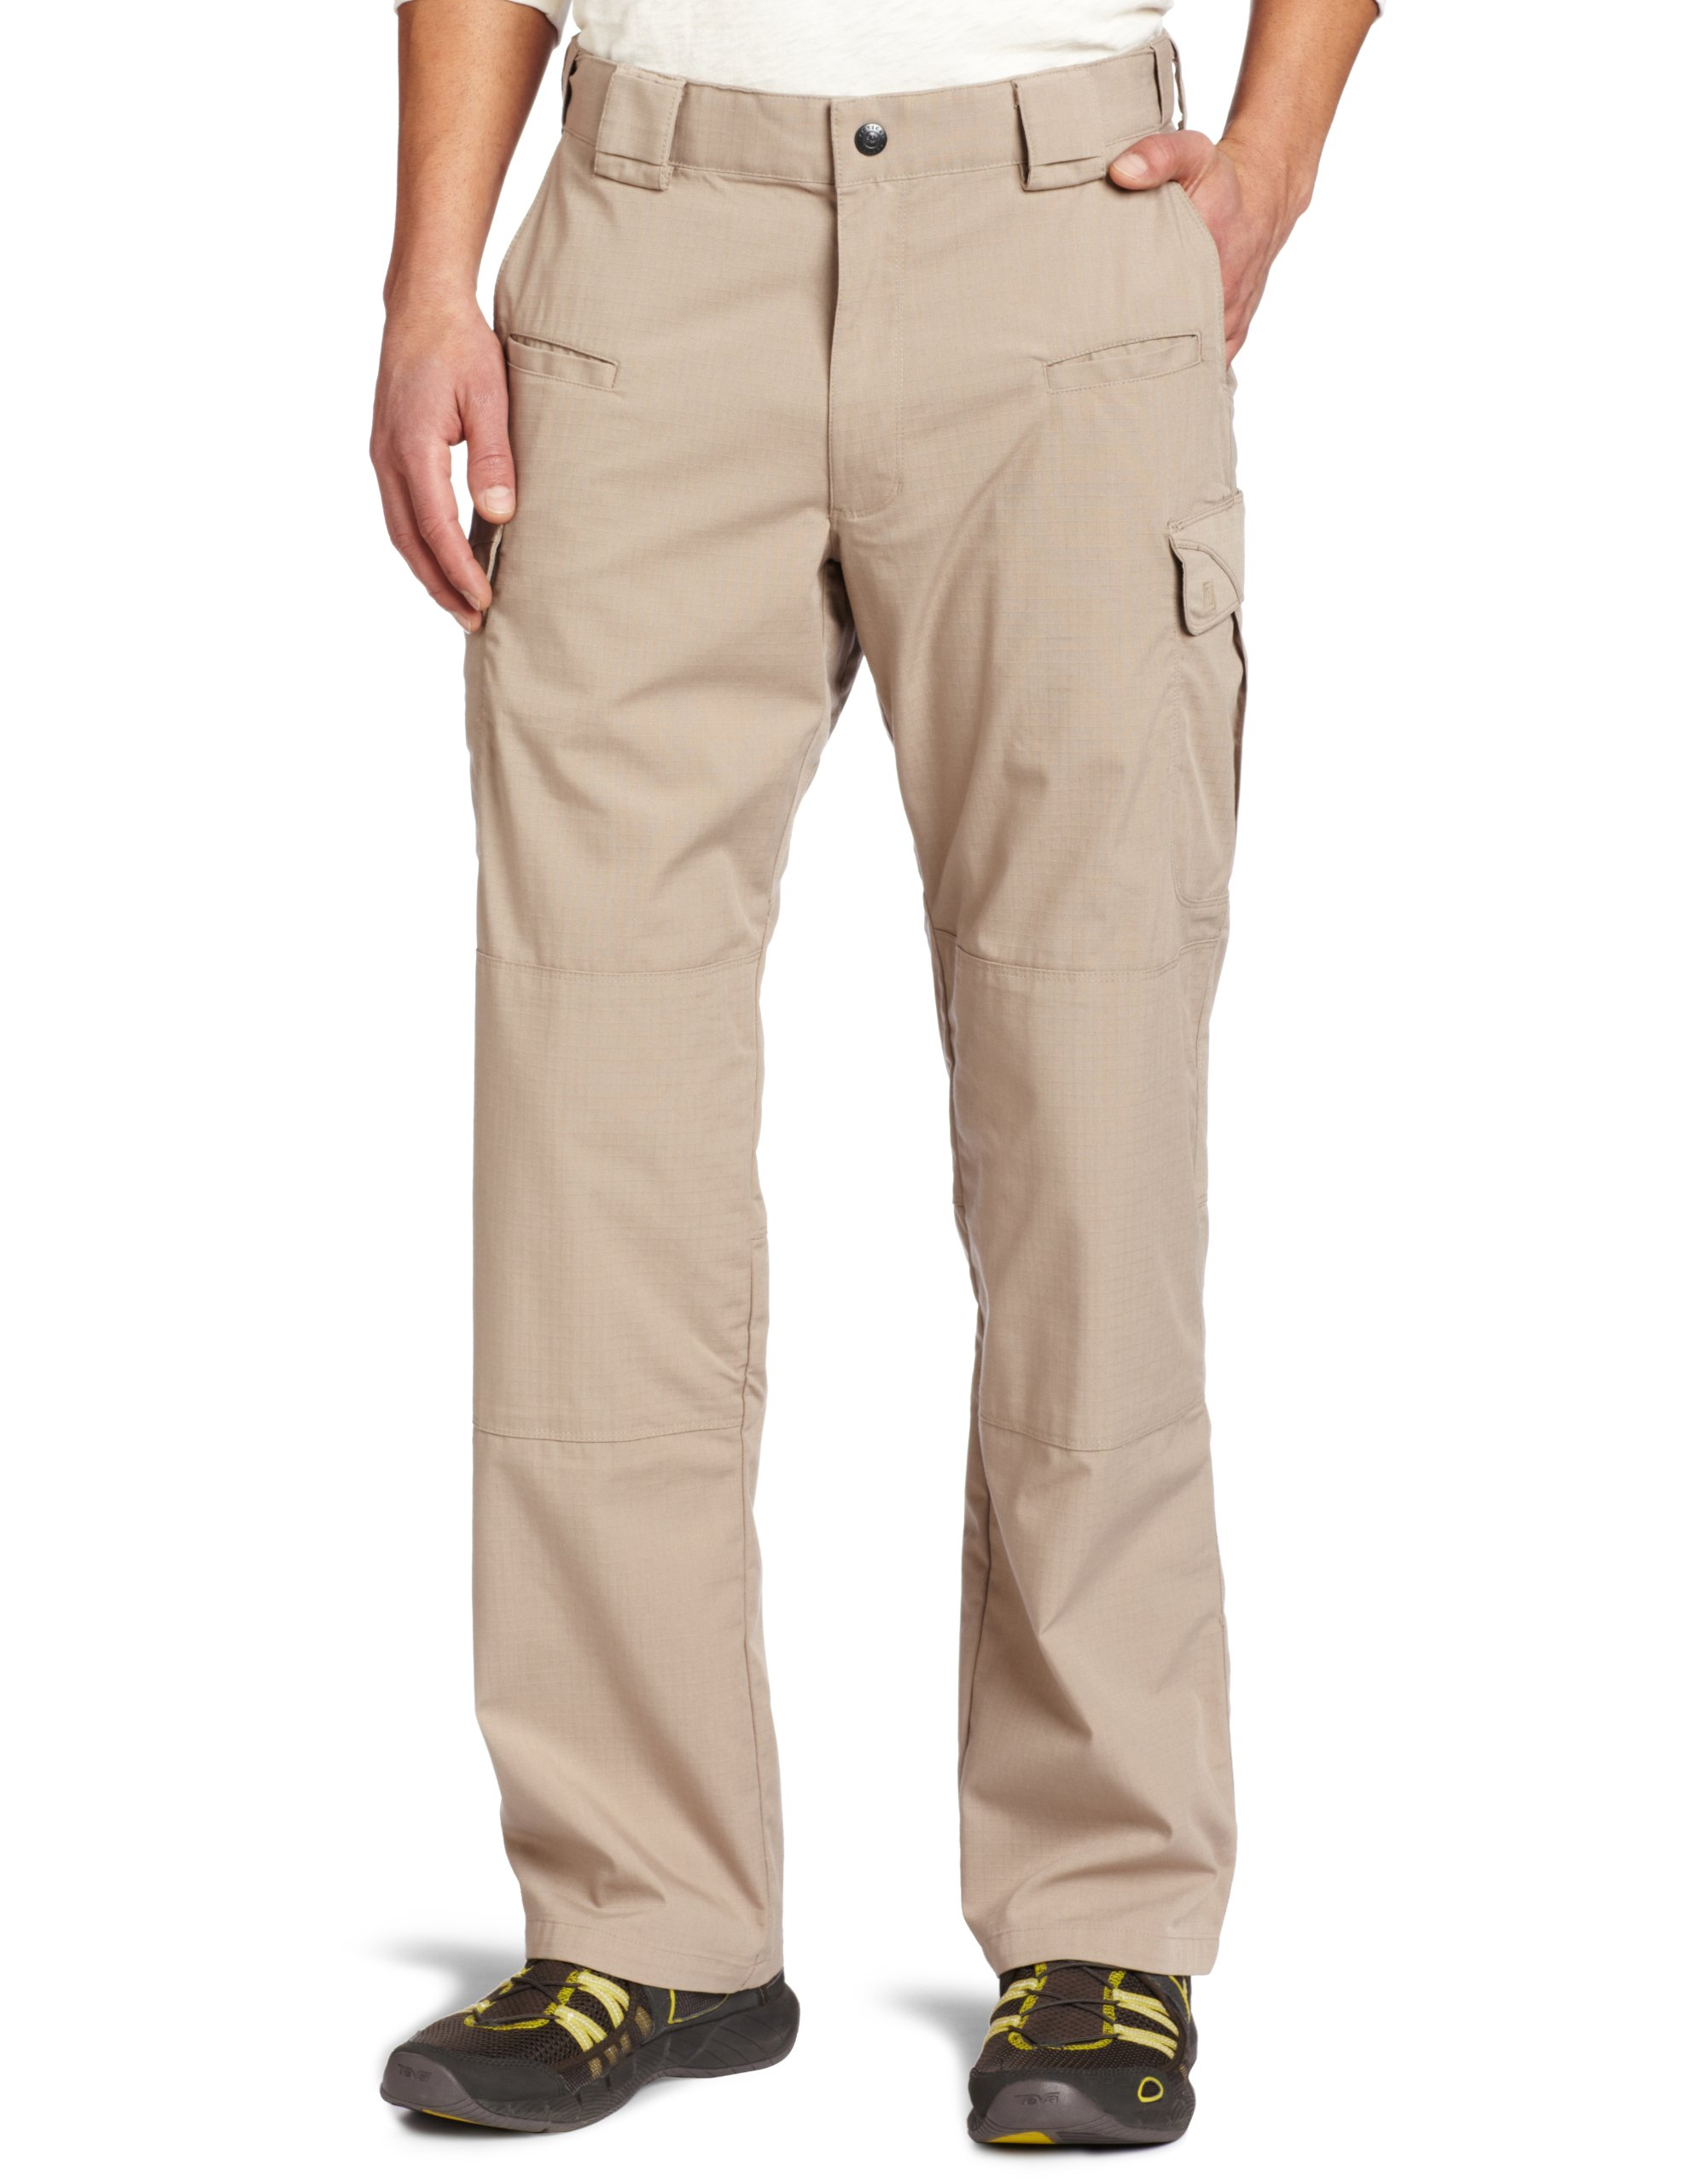 5.11 Tactical Stryke Pant, Khaki, 34x30 by 5.11